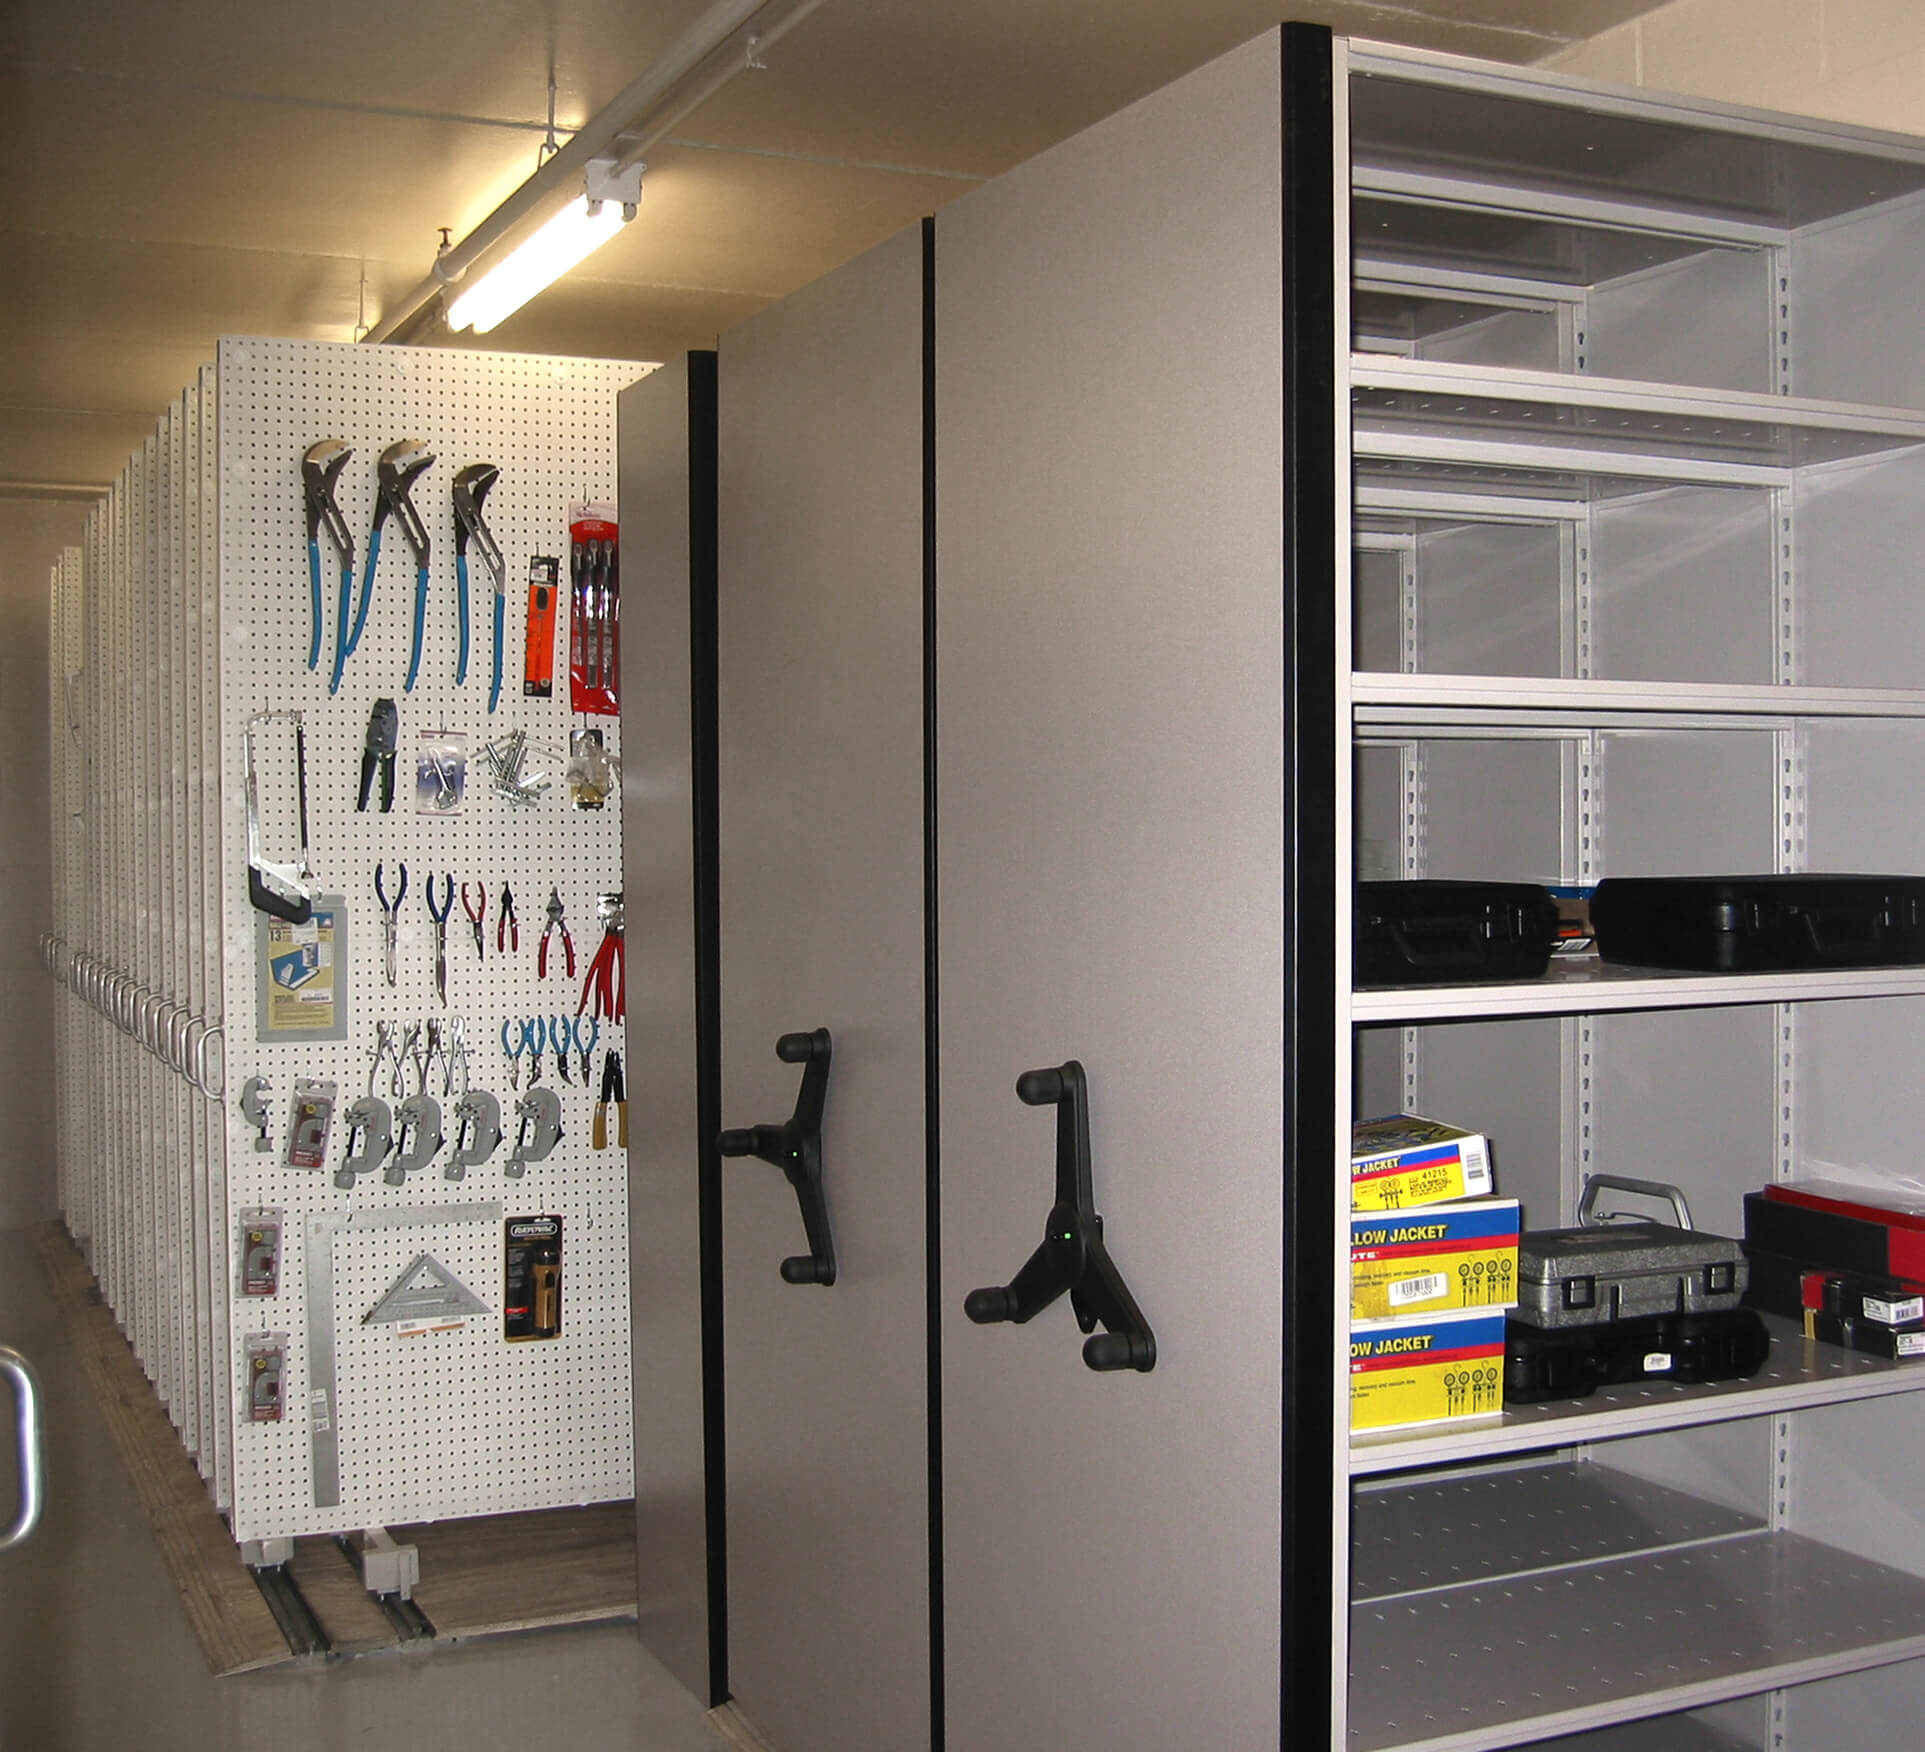 Secure Corrections Facility Storage Extends To Tool Room